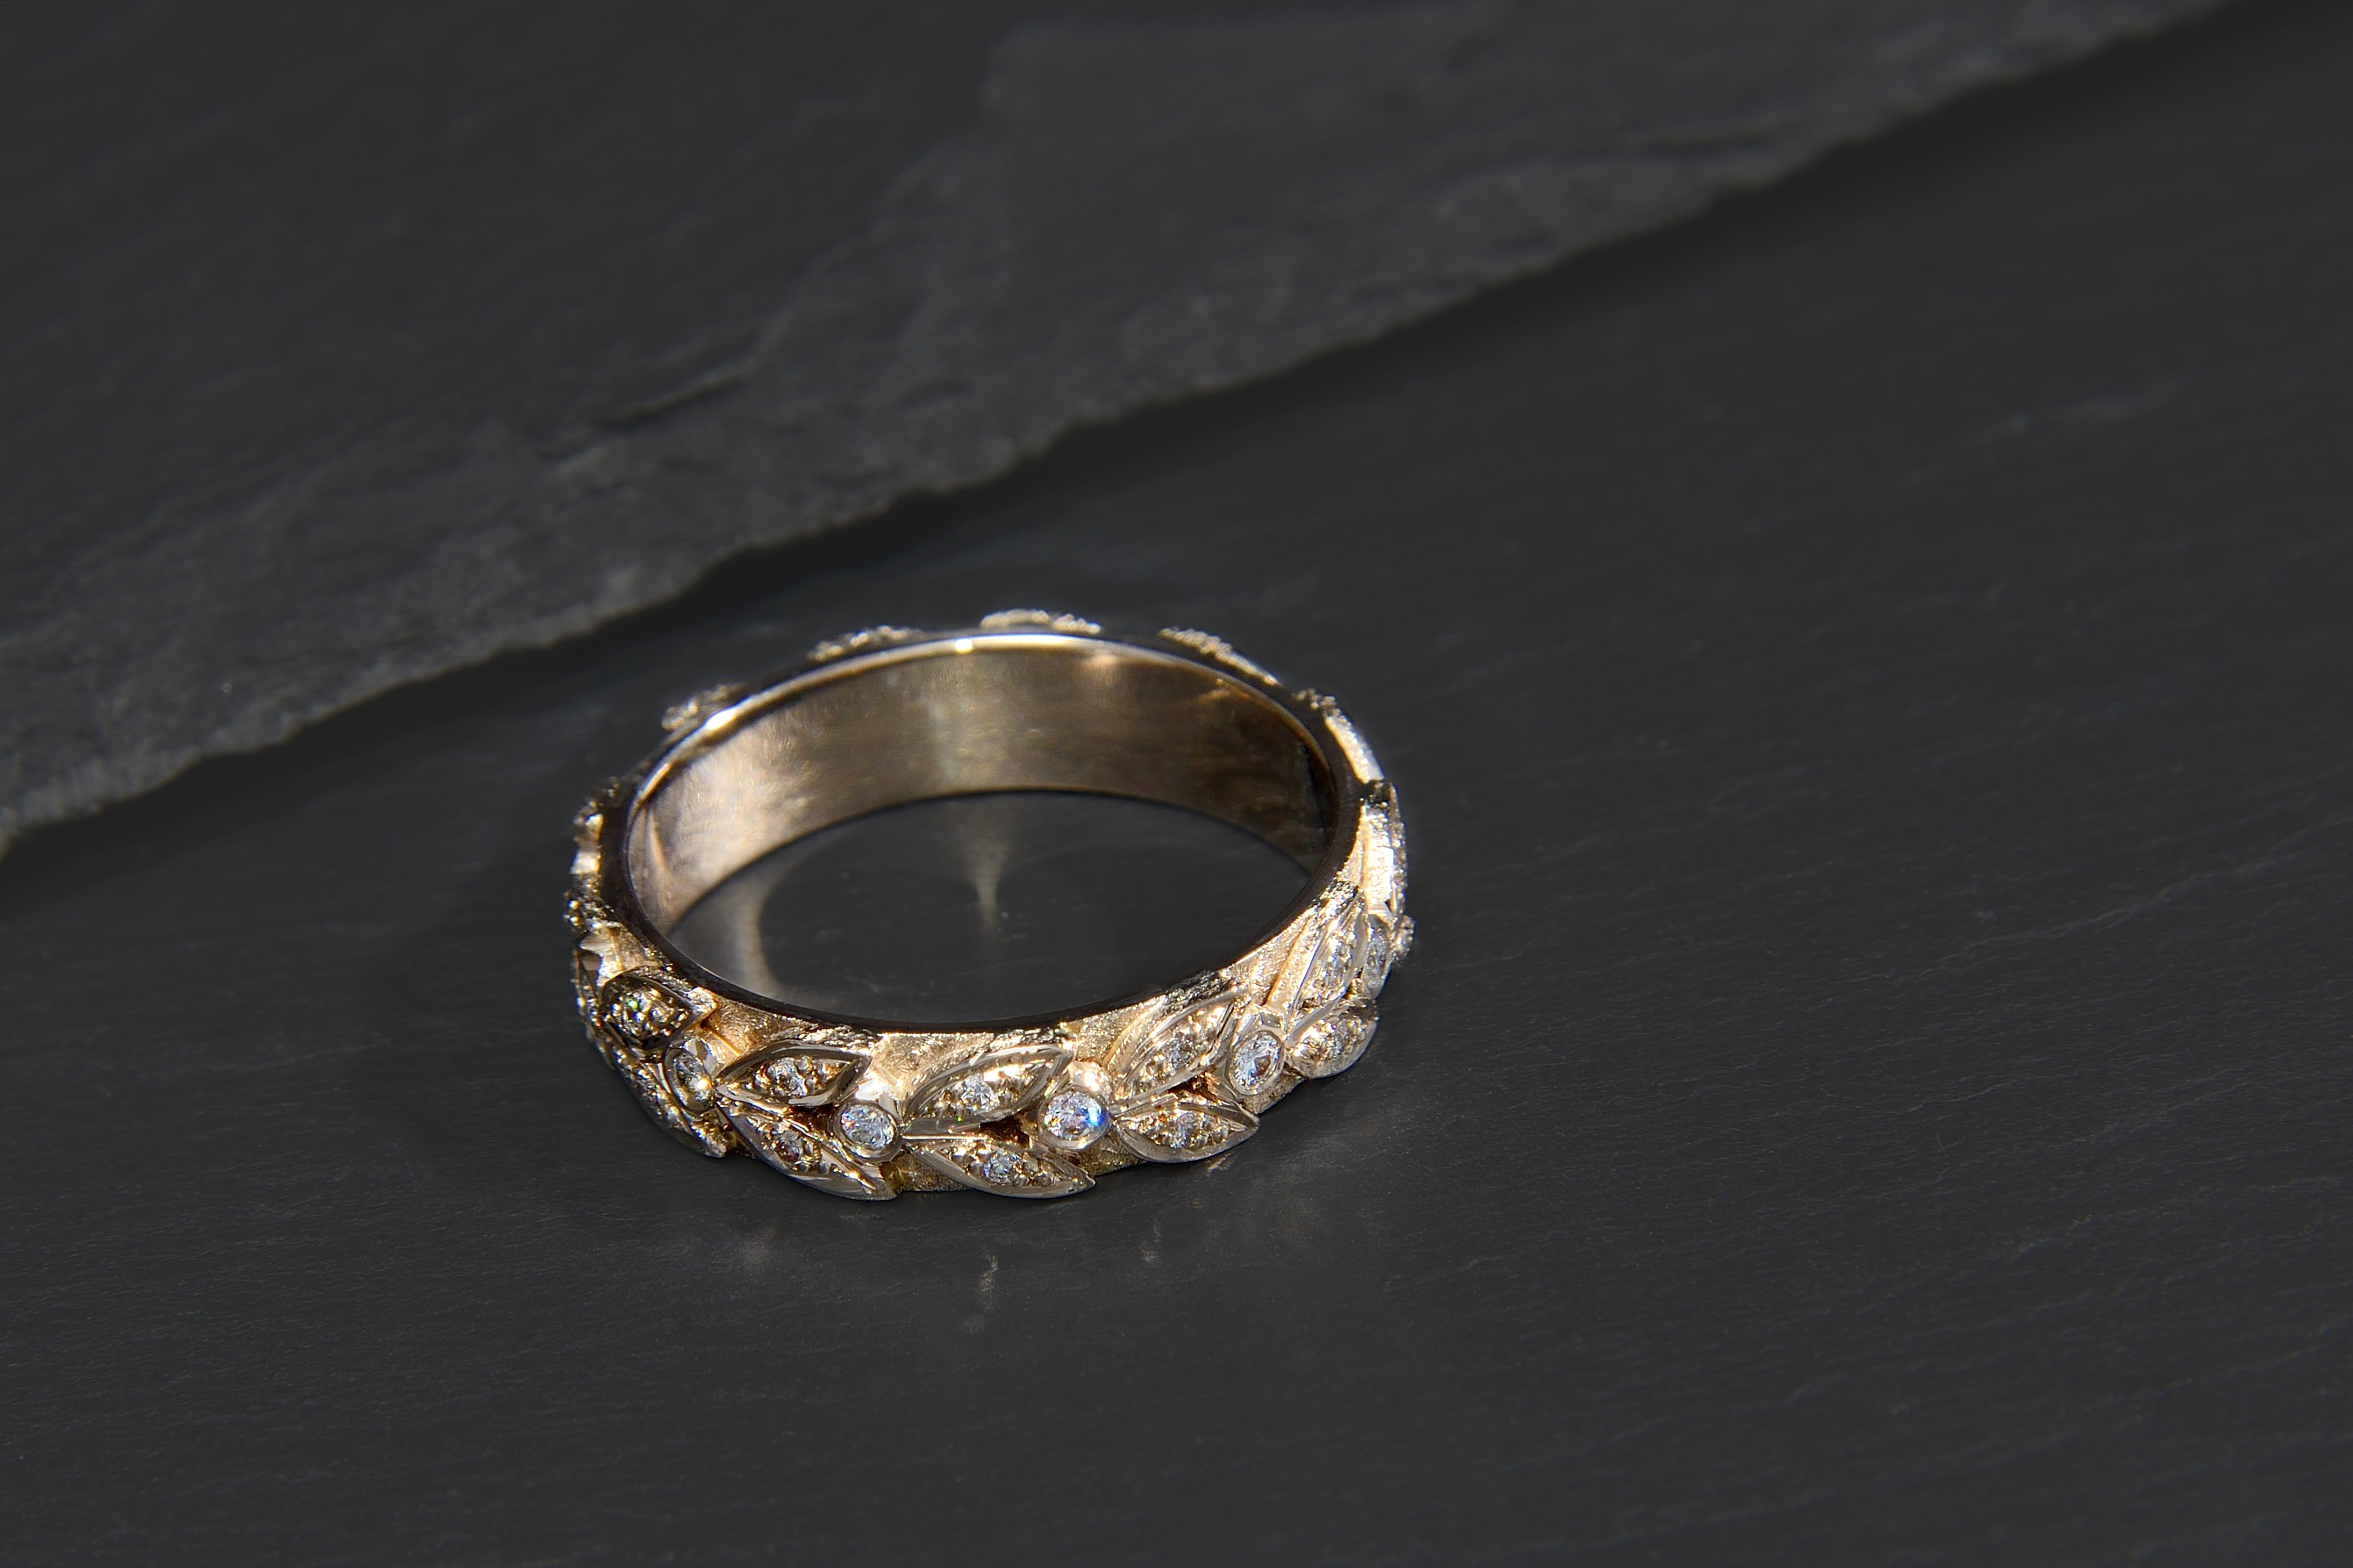 Why go to the jewellers when you can get something bespoke?